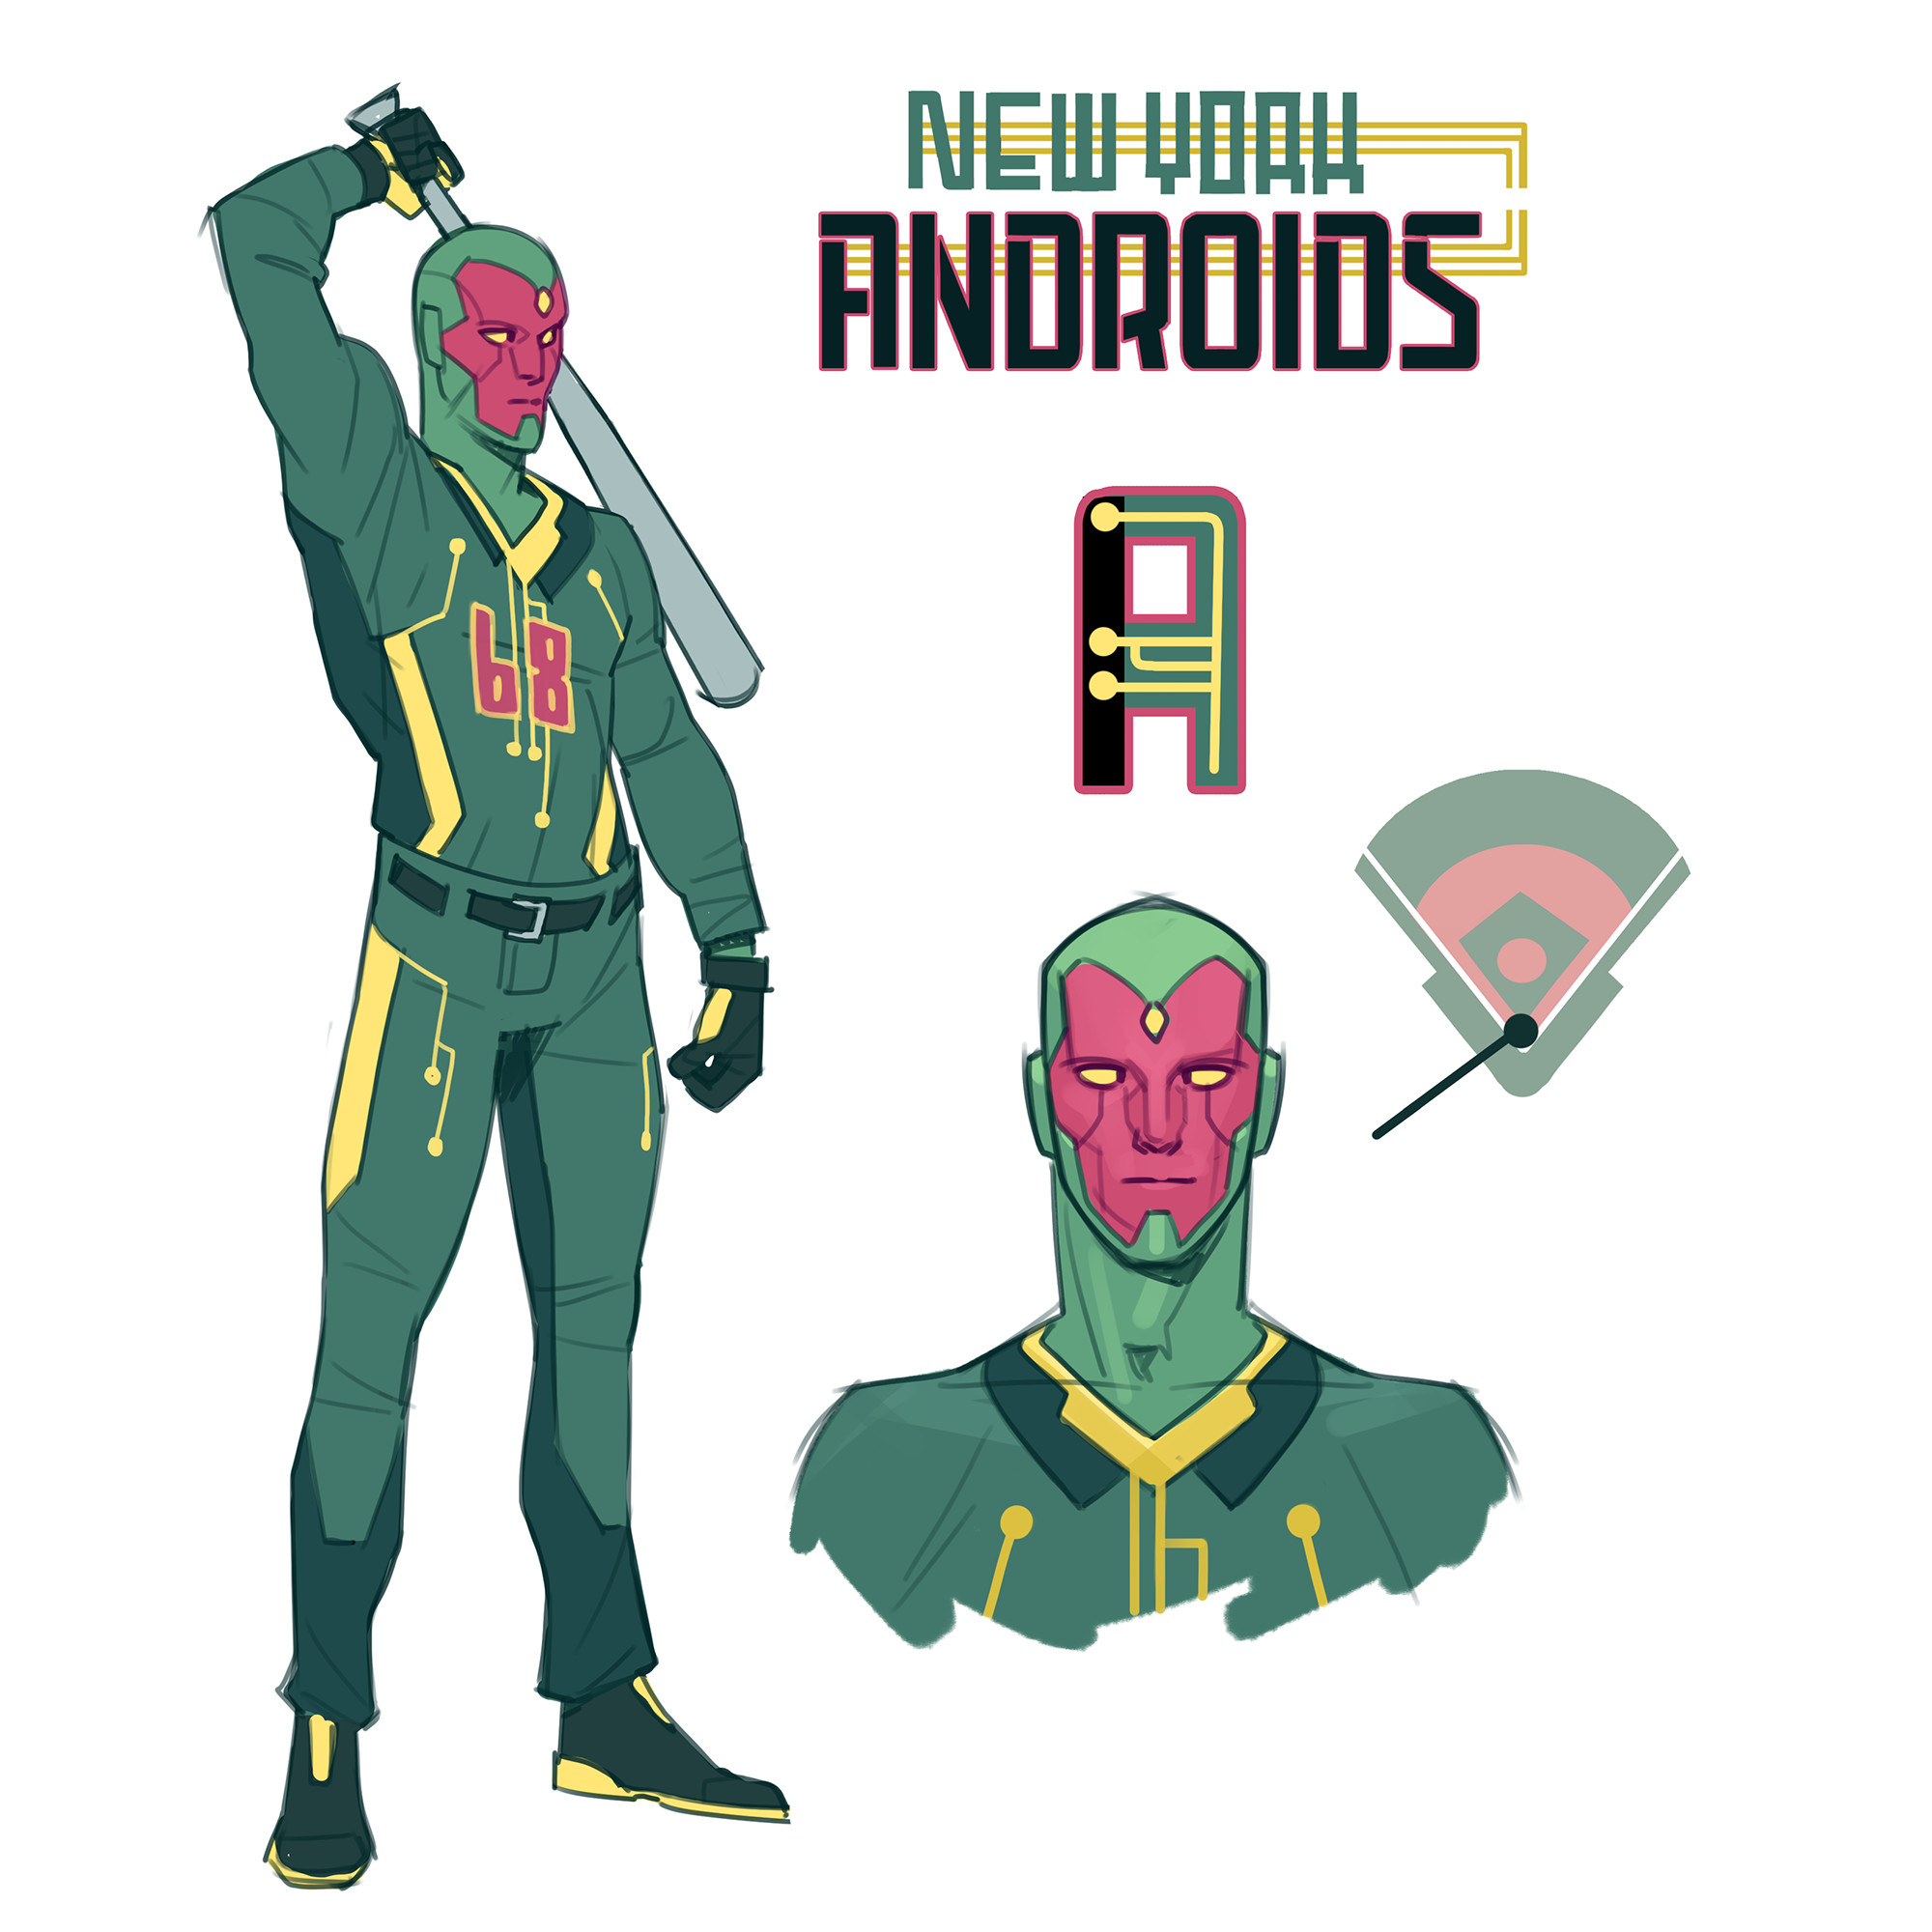 The New York Androids!